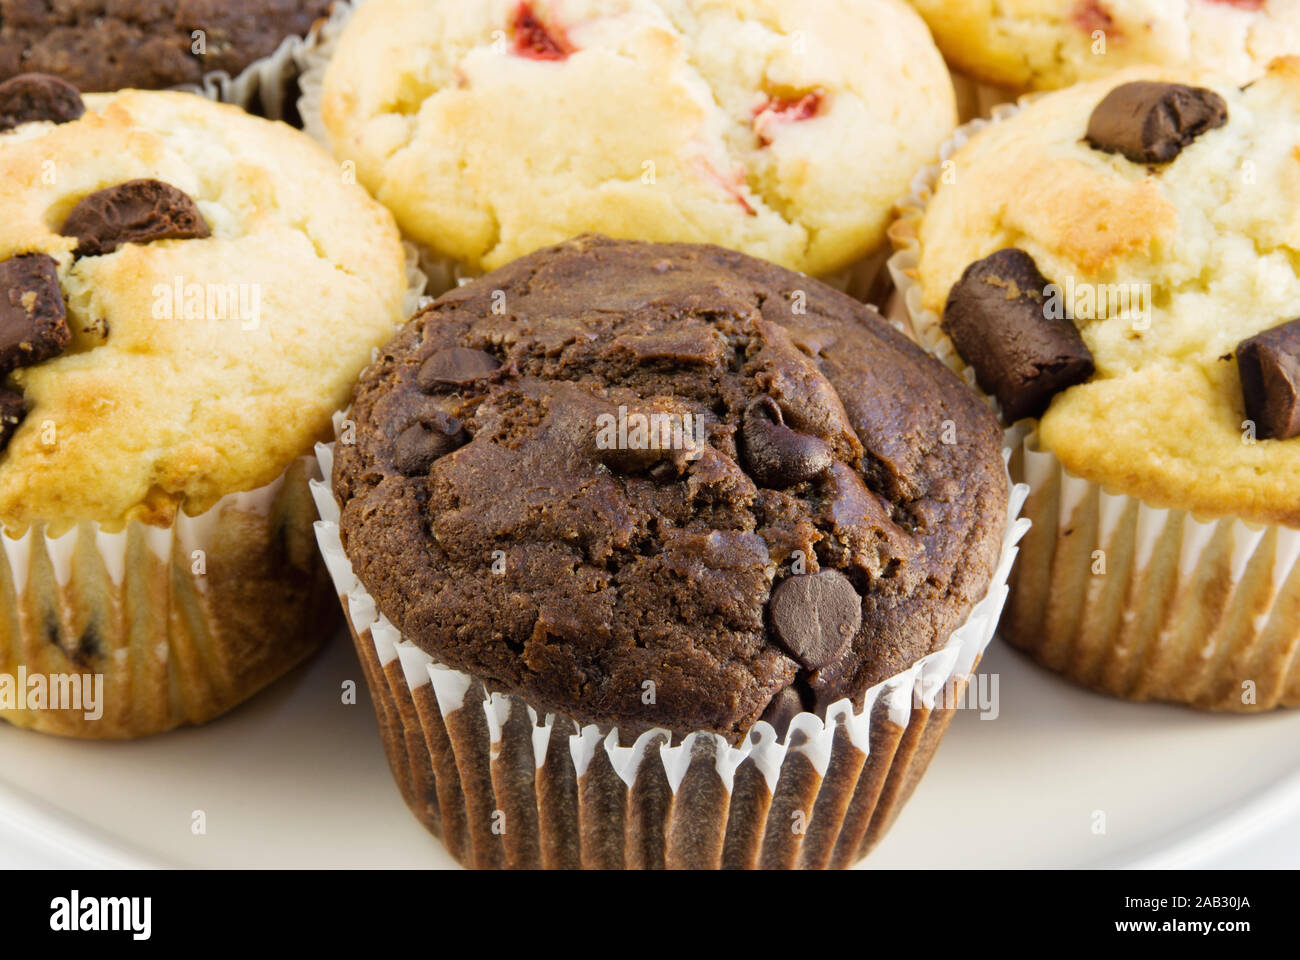 Homemade Jumbo Sized Assorted Sweet Muffins For Breakfast Muffins Are Chocolate Chip Chocolate Marshmallow And Strawberry Buttermilk Stock Photo Alamy